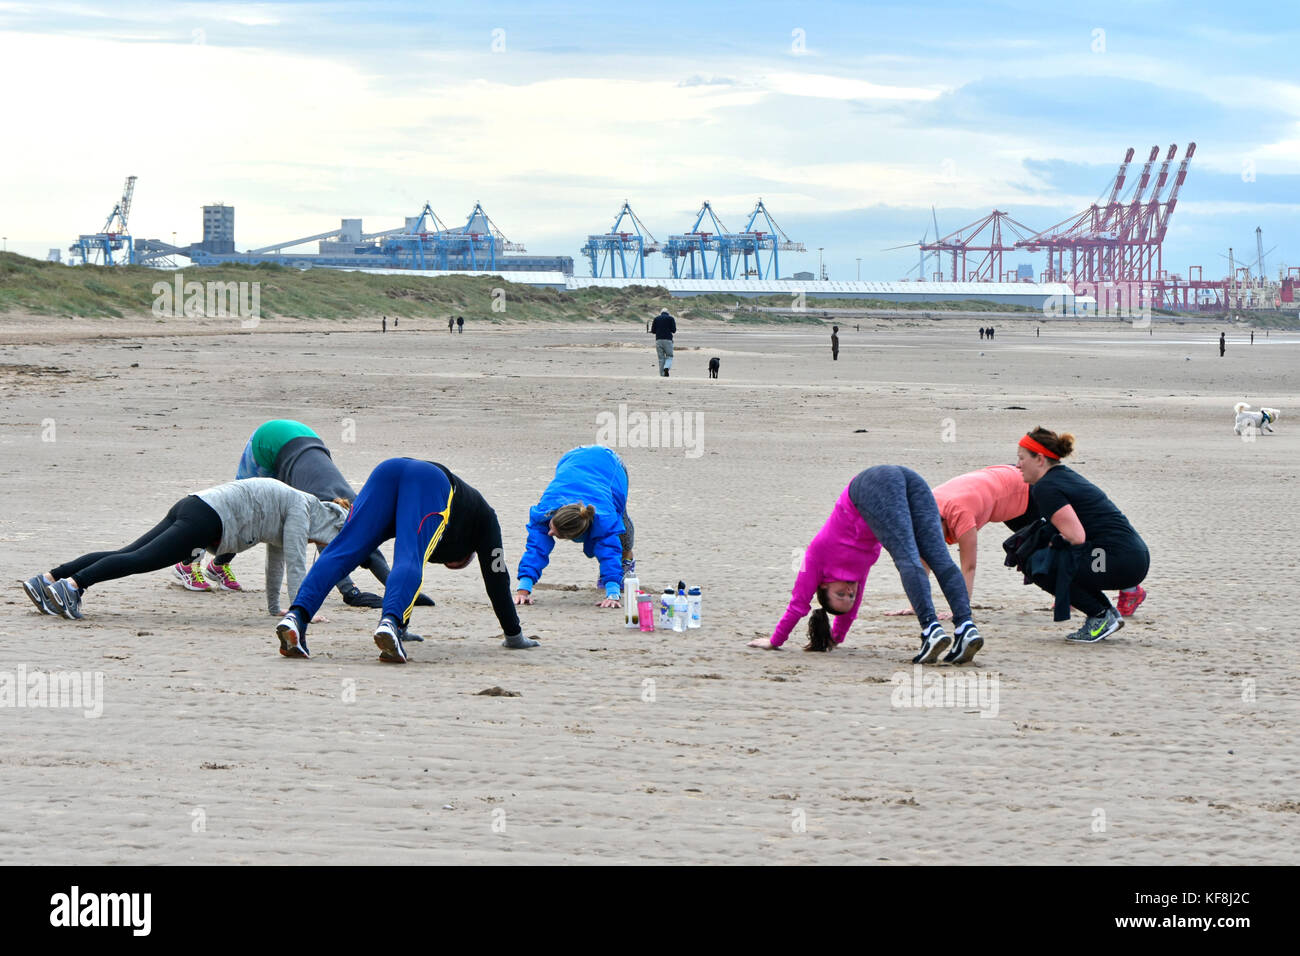 Instructor guiding people taking part in keep fit exercise class on Crosby beach Sefton Liverpool container port - Stock Image